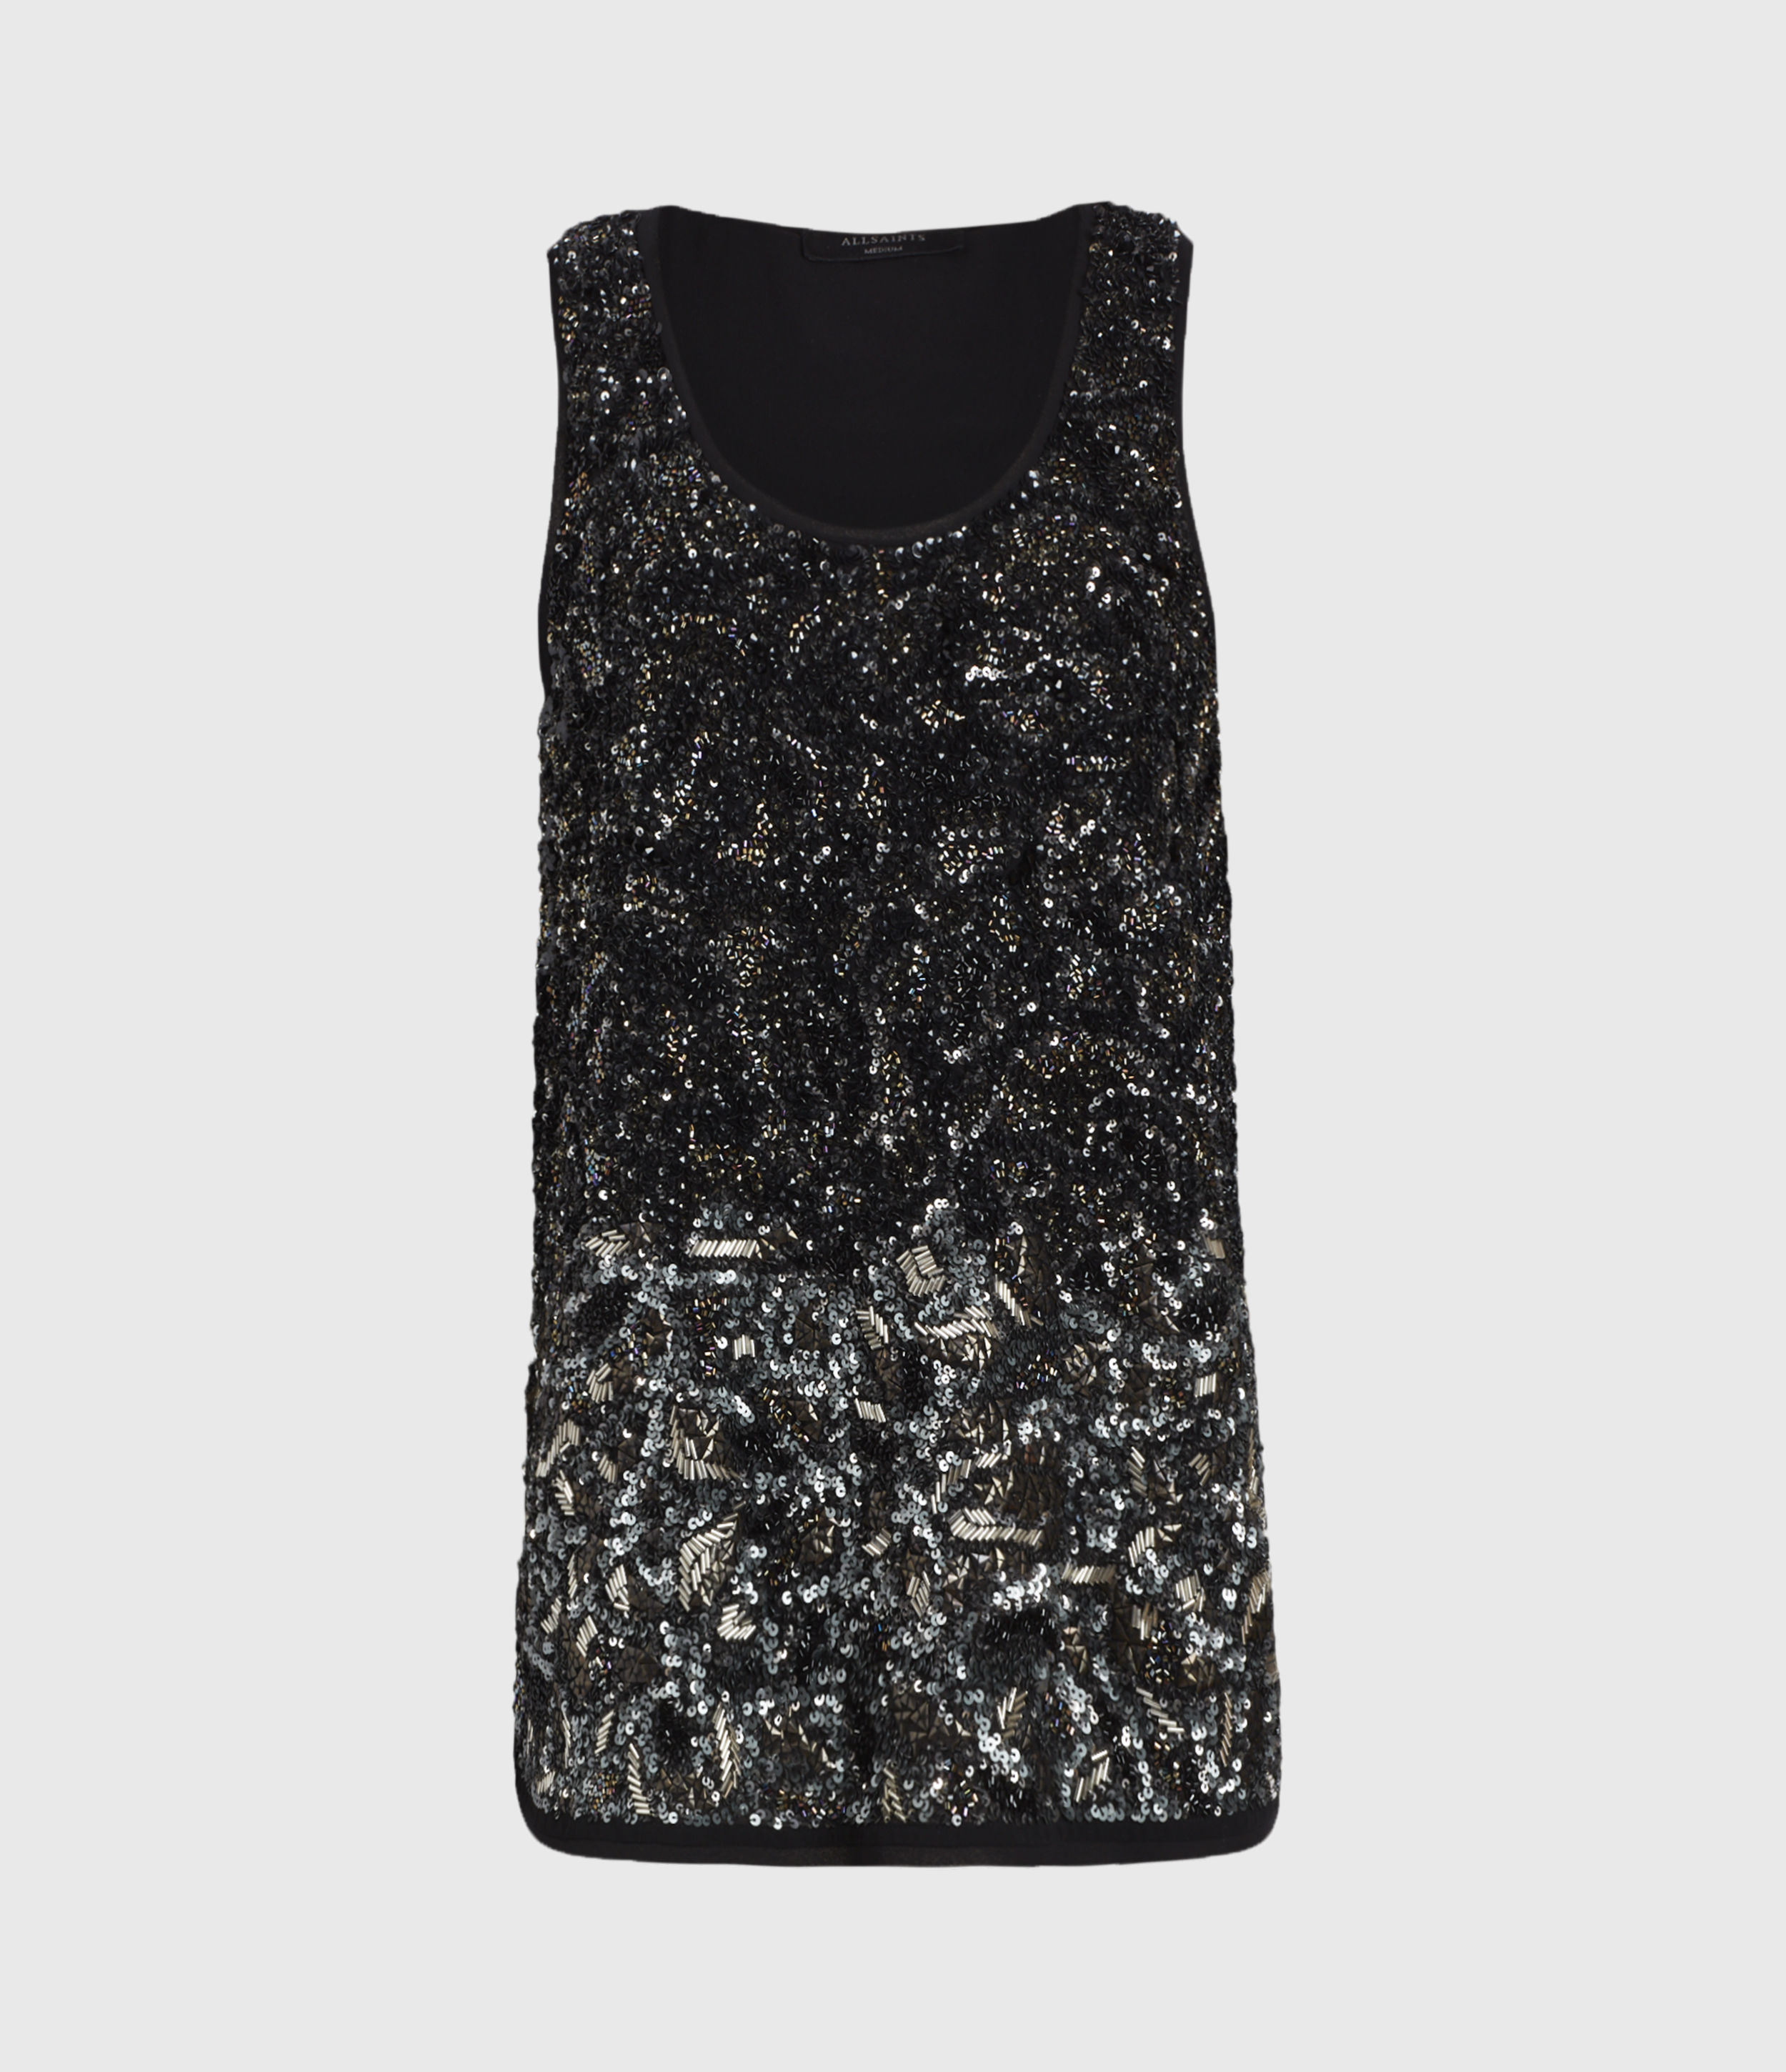 AllSaints Brellie Embellished Top